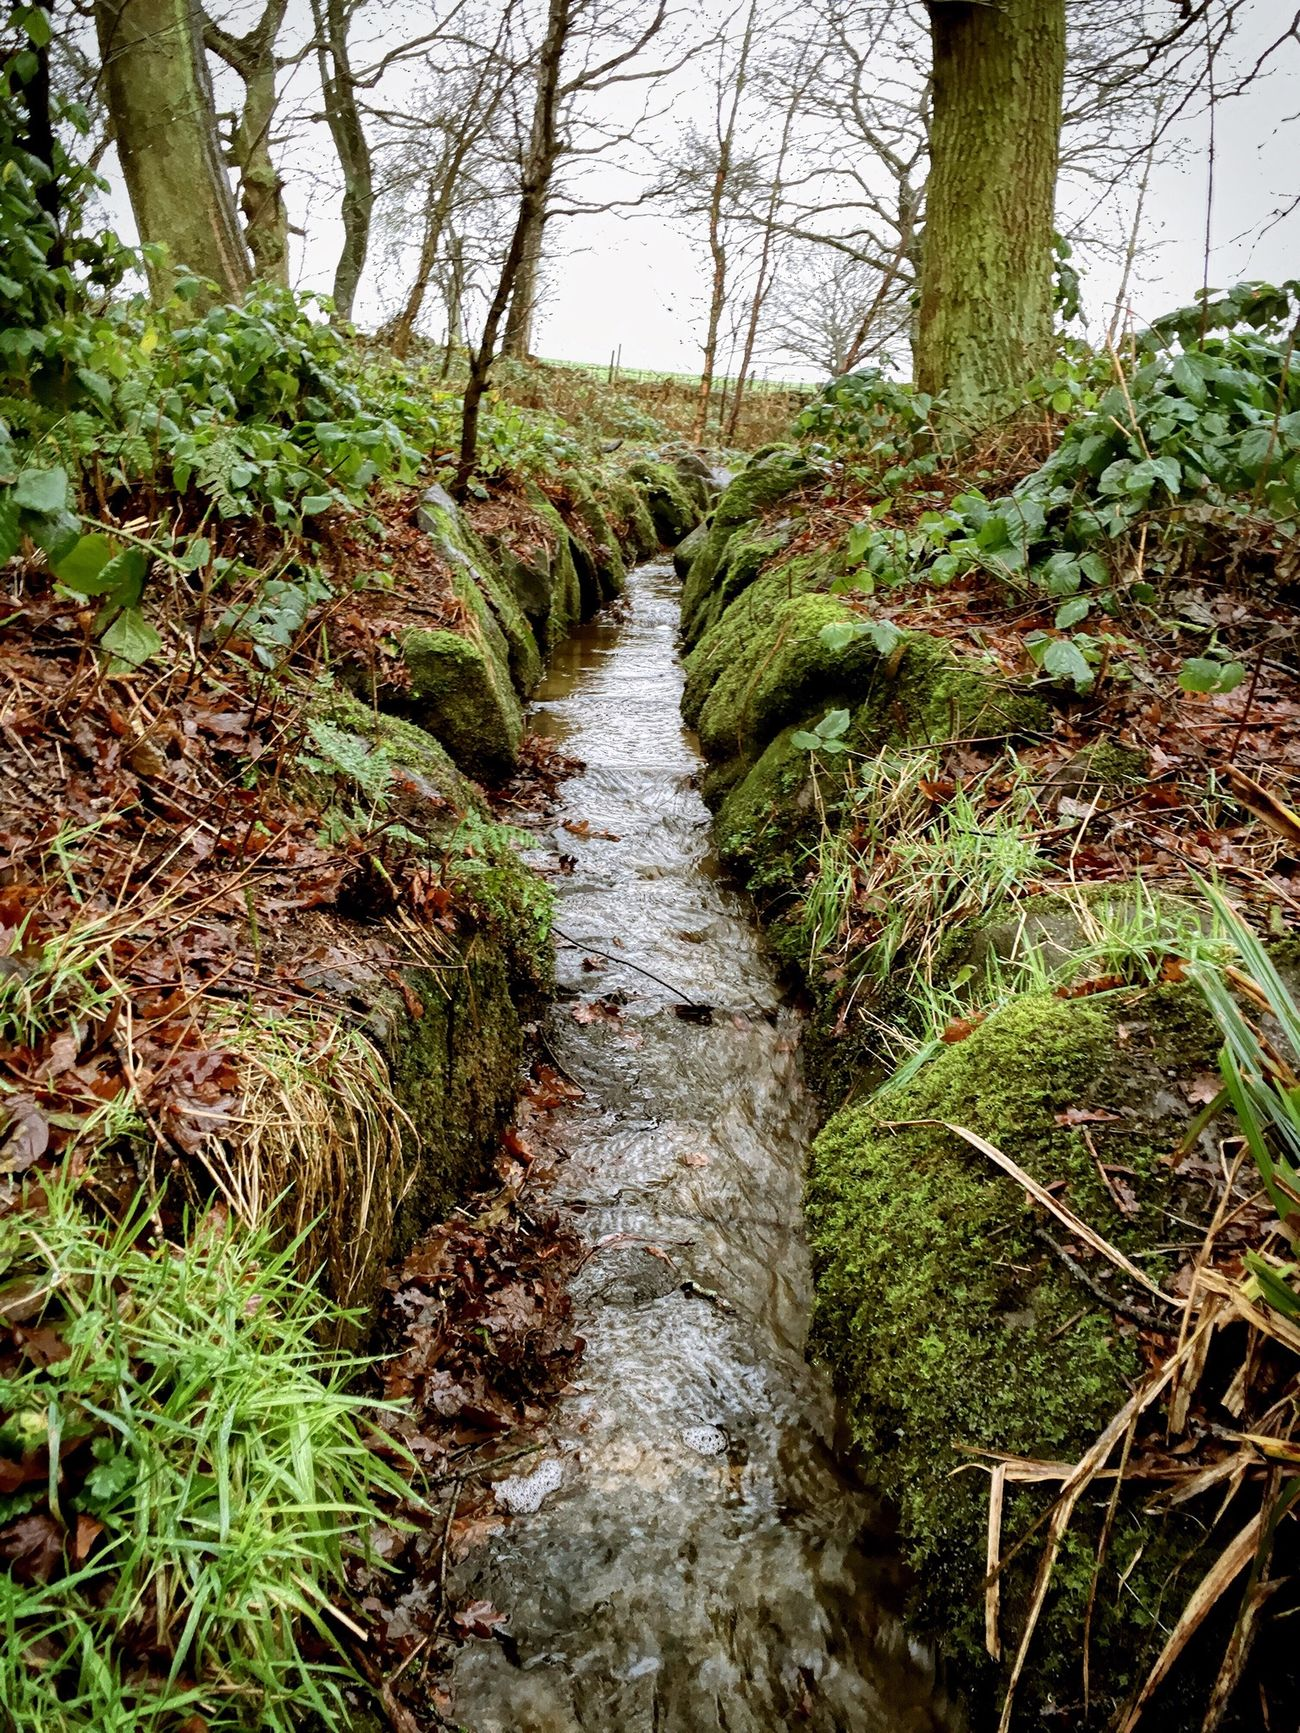 Stream Winter Walk Flaura And Fauna Winter Landscape Rain Day January2016 Biddulph Country Park Biddulph Staffordshire Moorlands Rainy Walks Winter Colors Cold Days English Countryside